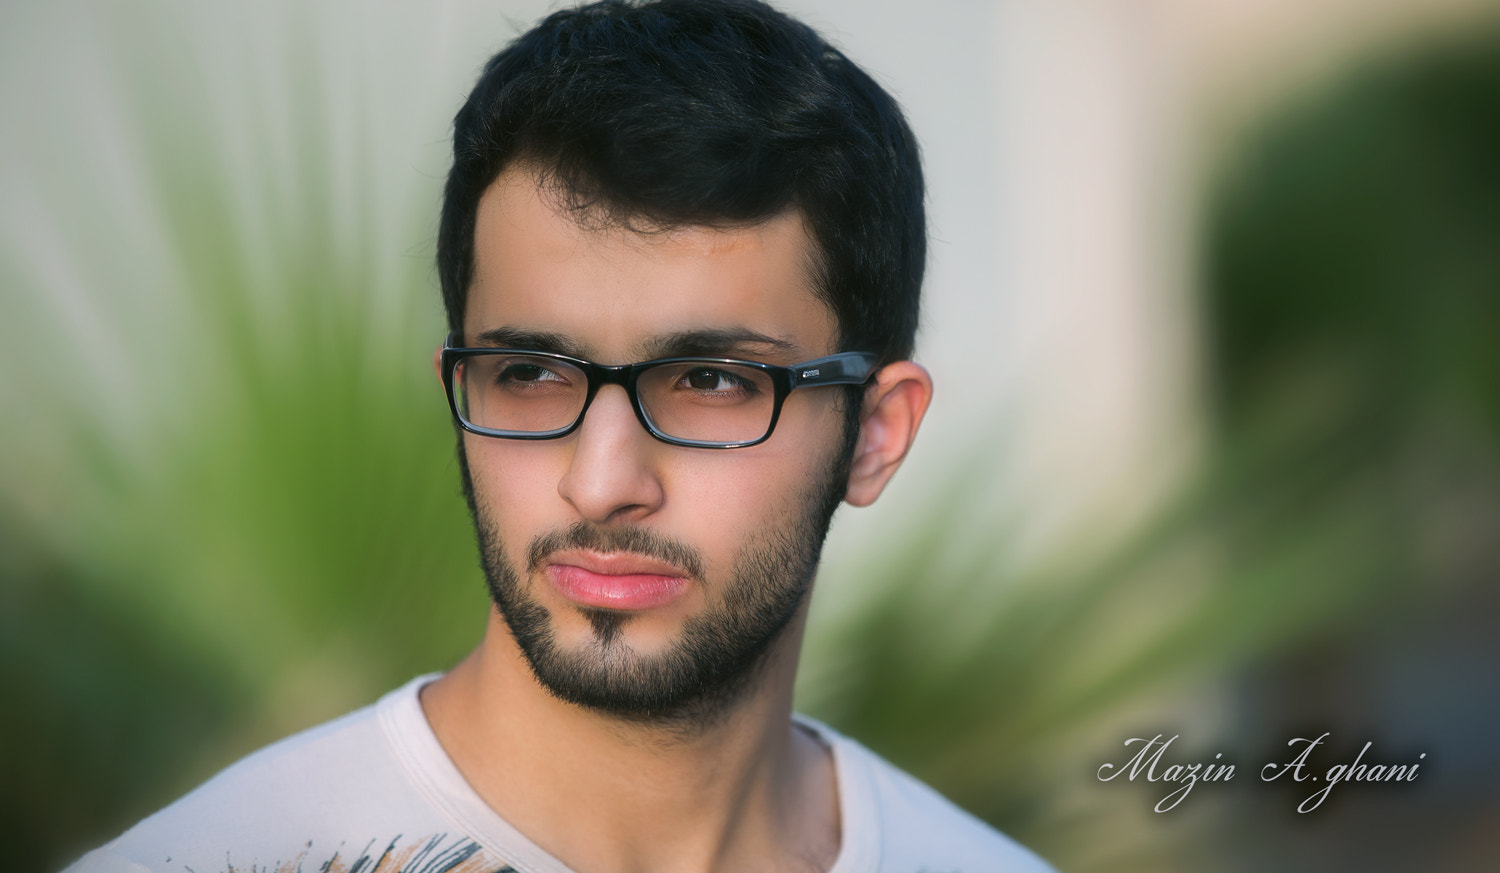 Photograph My Frind Ammar by Mazin Abdalghani on 500px